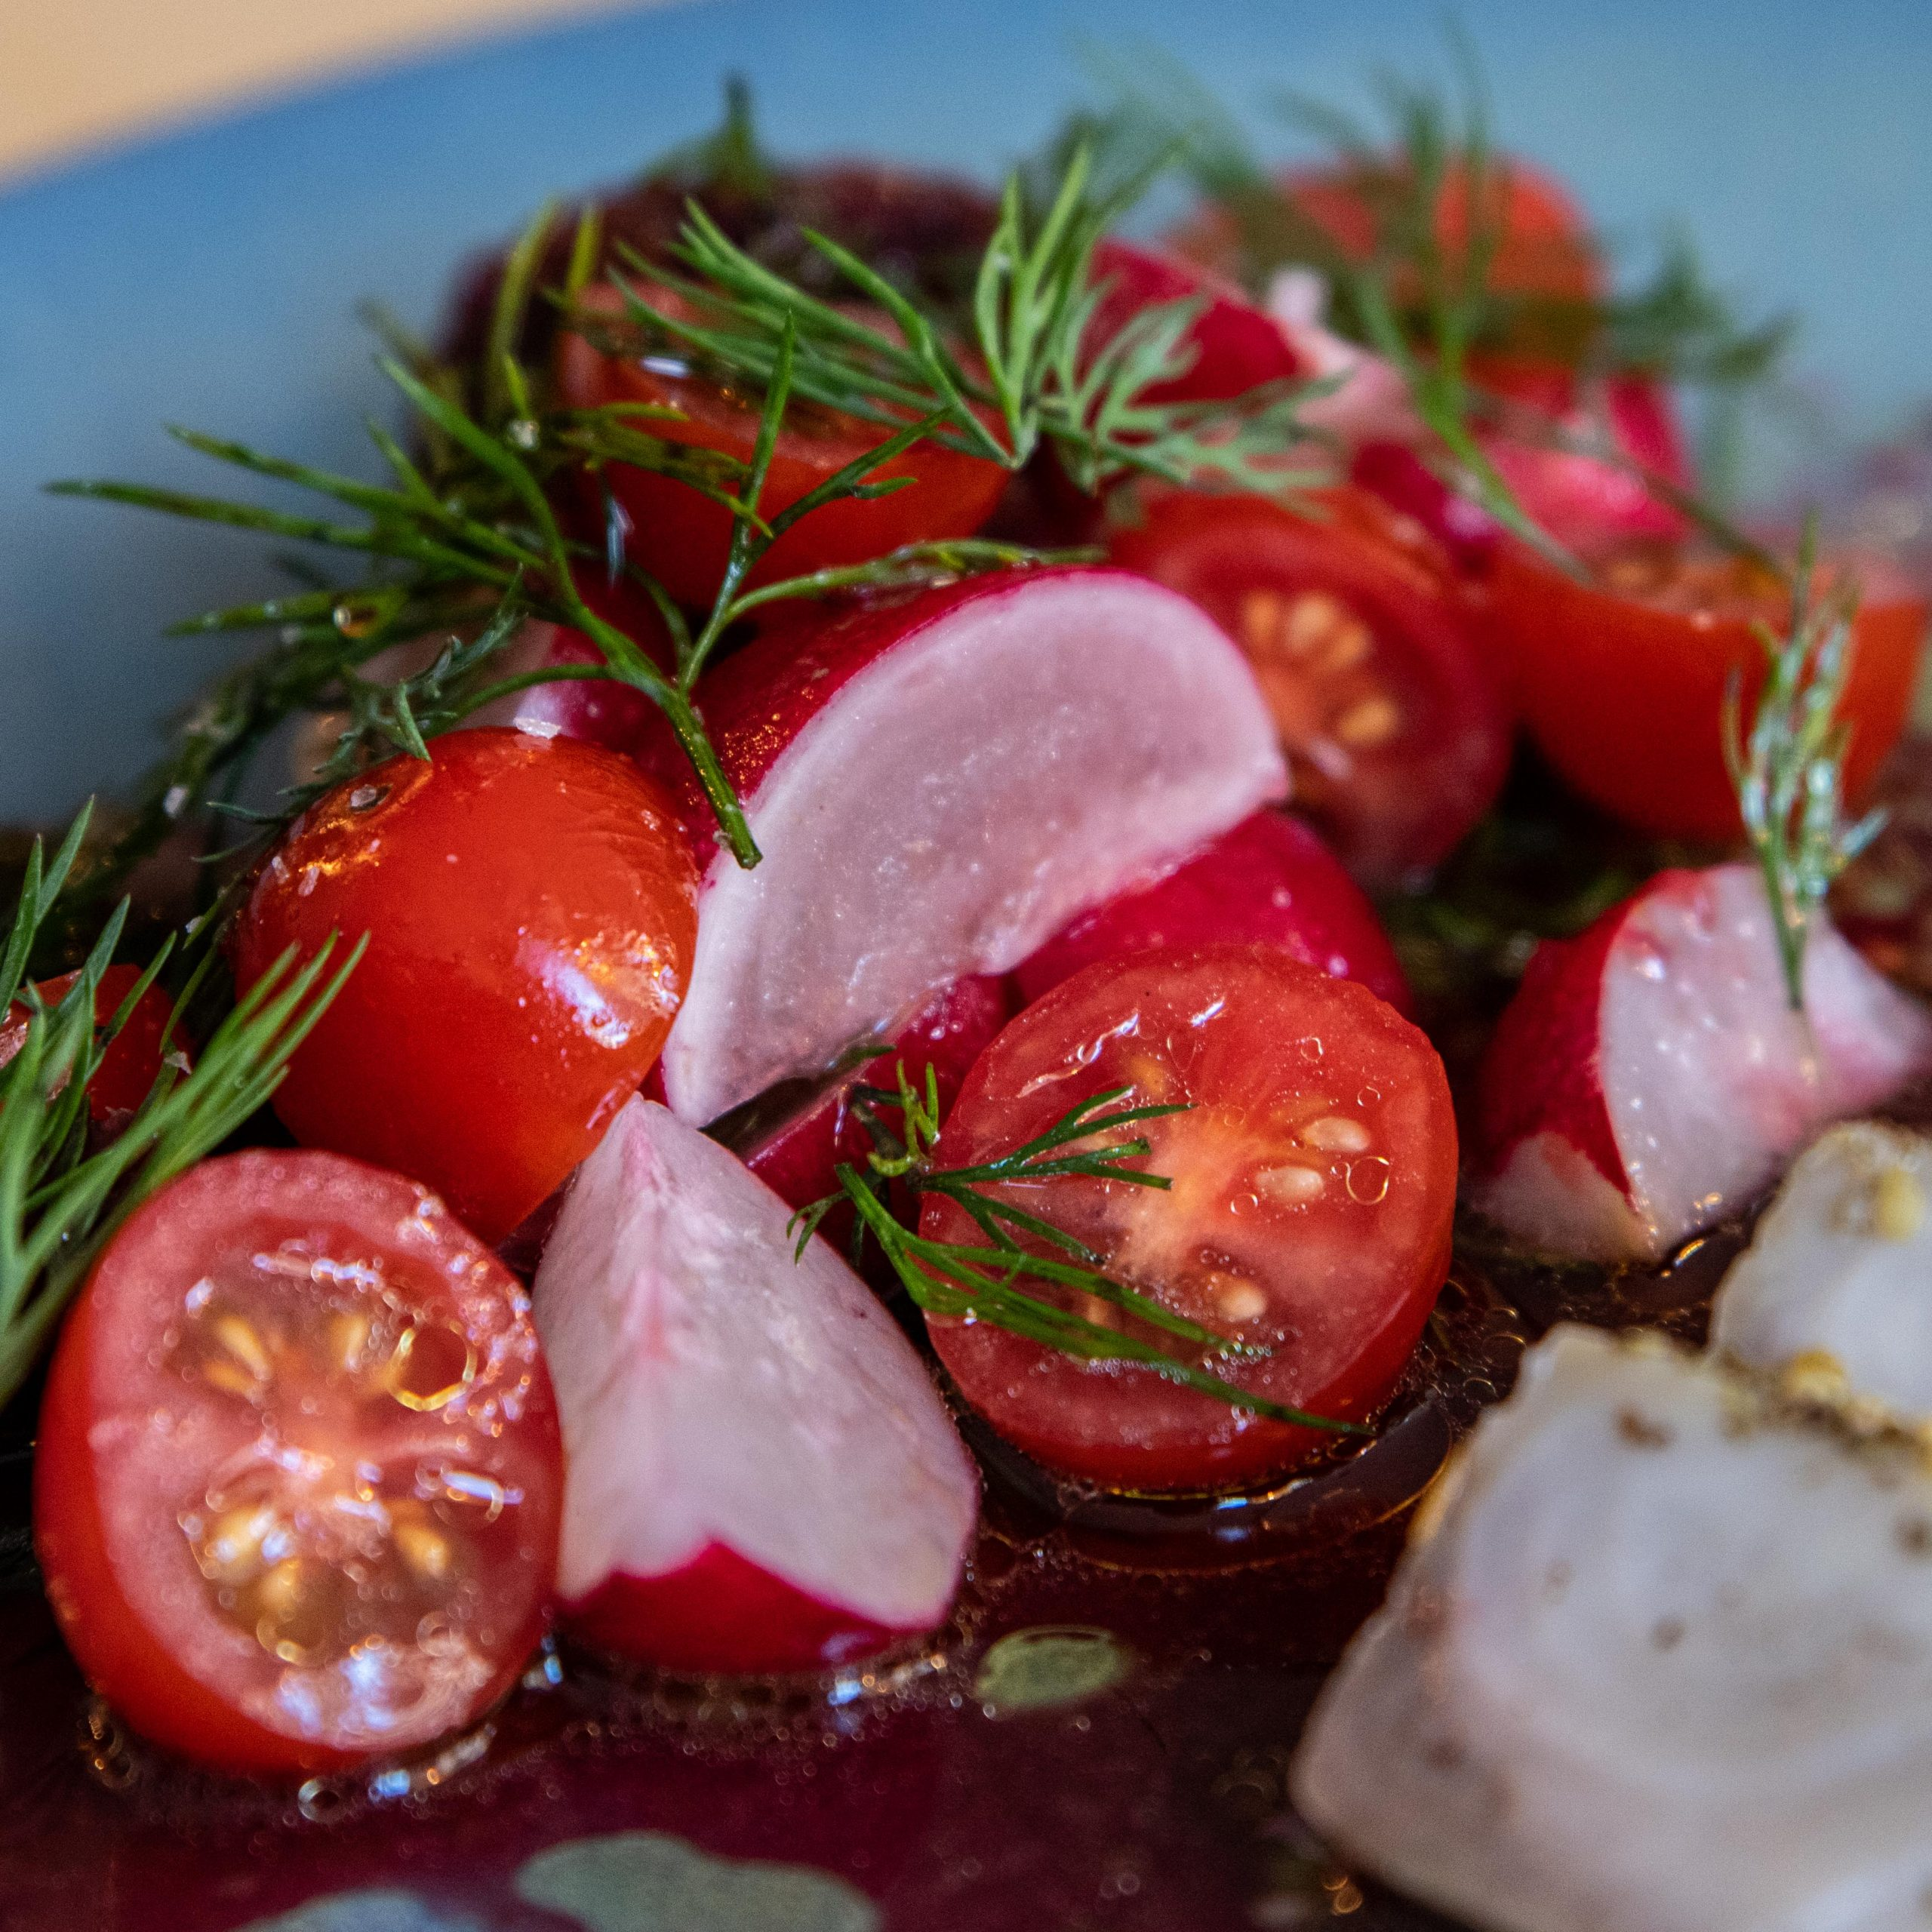 Song Kitchen Rashes and Cherry Tomatos from Smoky pickled bonito